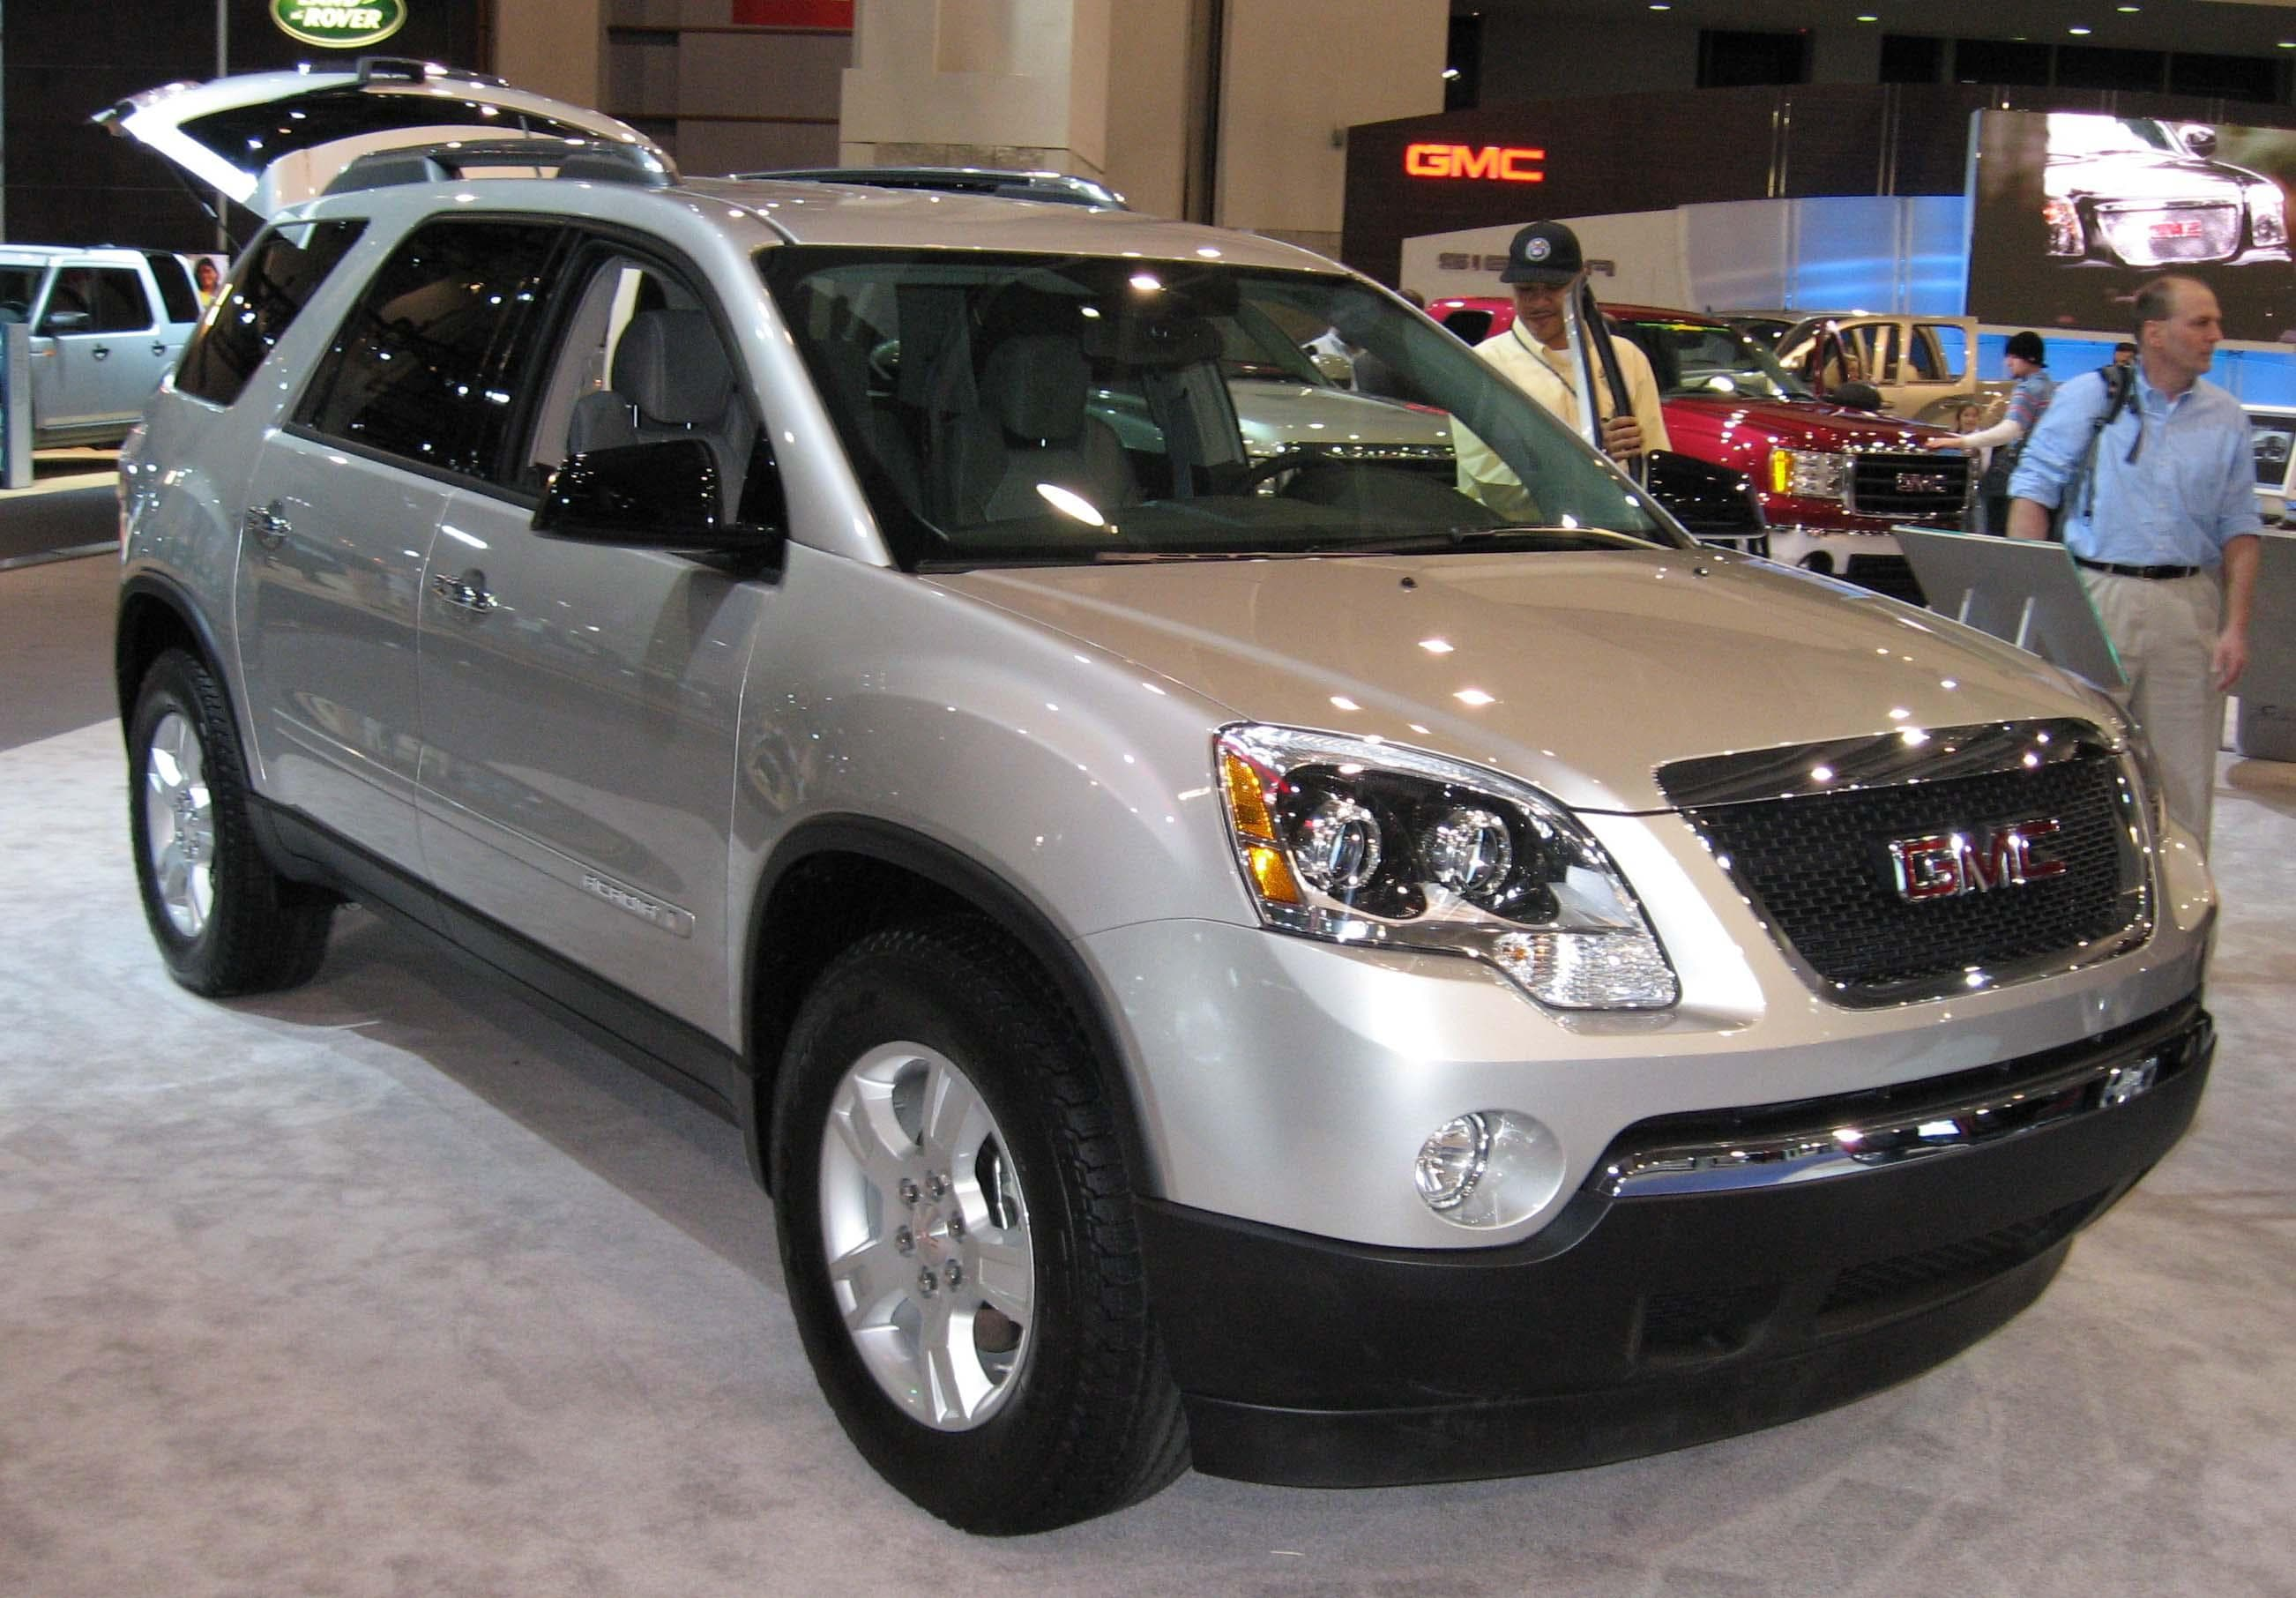 All GMC Models  List of GMC Cars   Vehicles  Page 2  GMC Acadia is listed  or ranked  5 on the list Full List of GMC